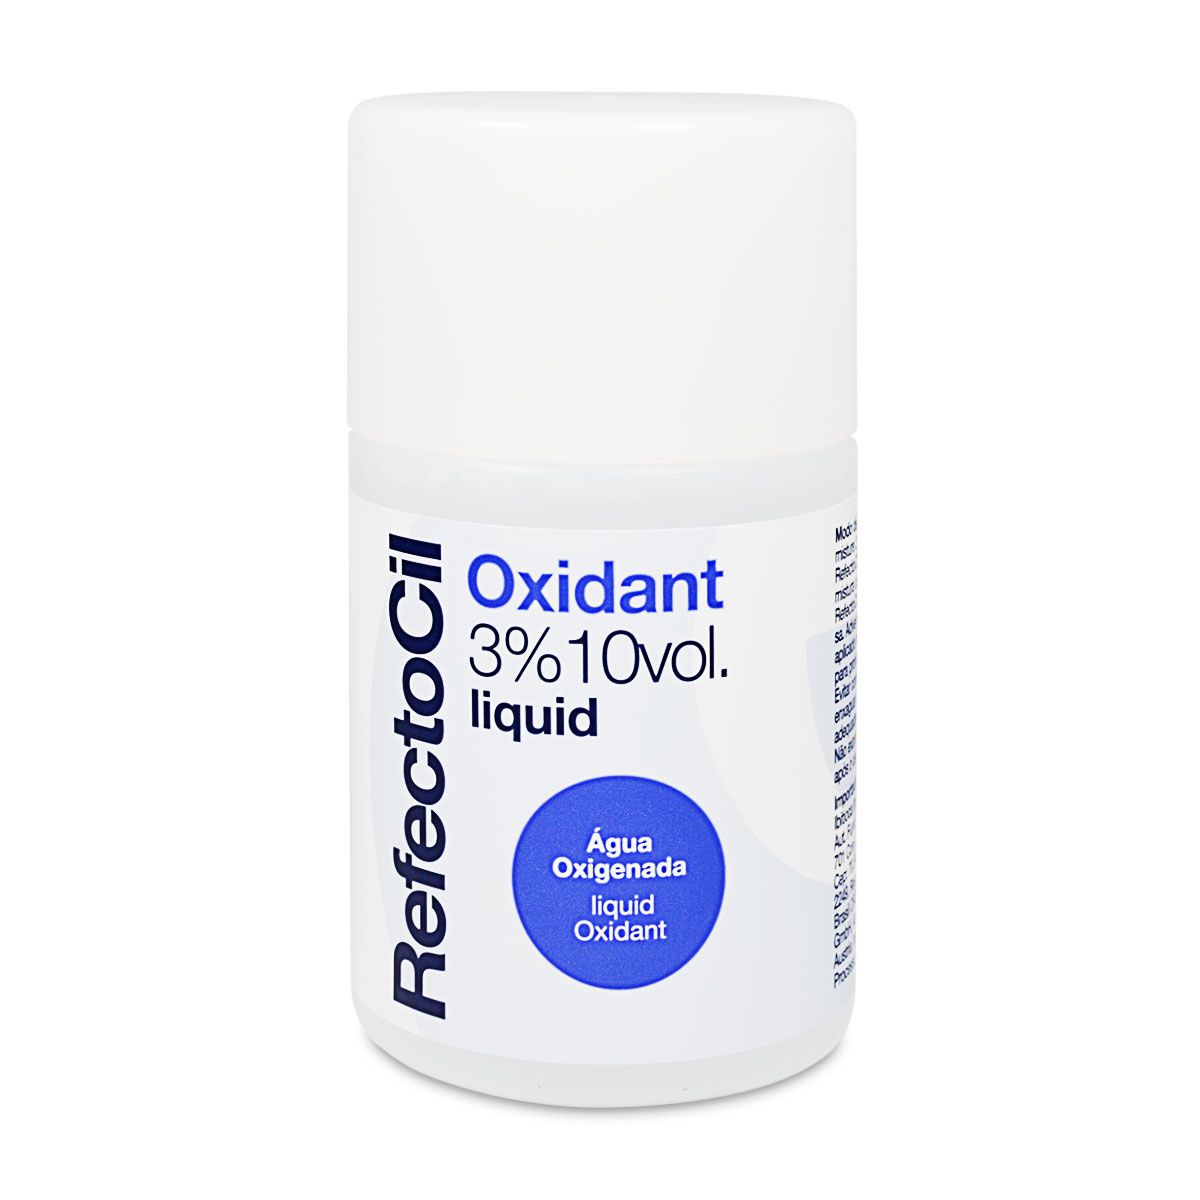 Oxidante Refectocil 3% 10 Vol. 100ml